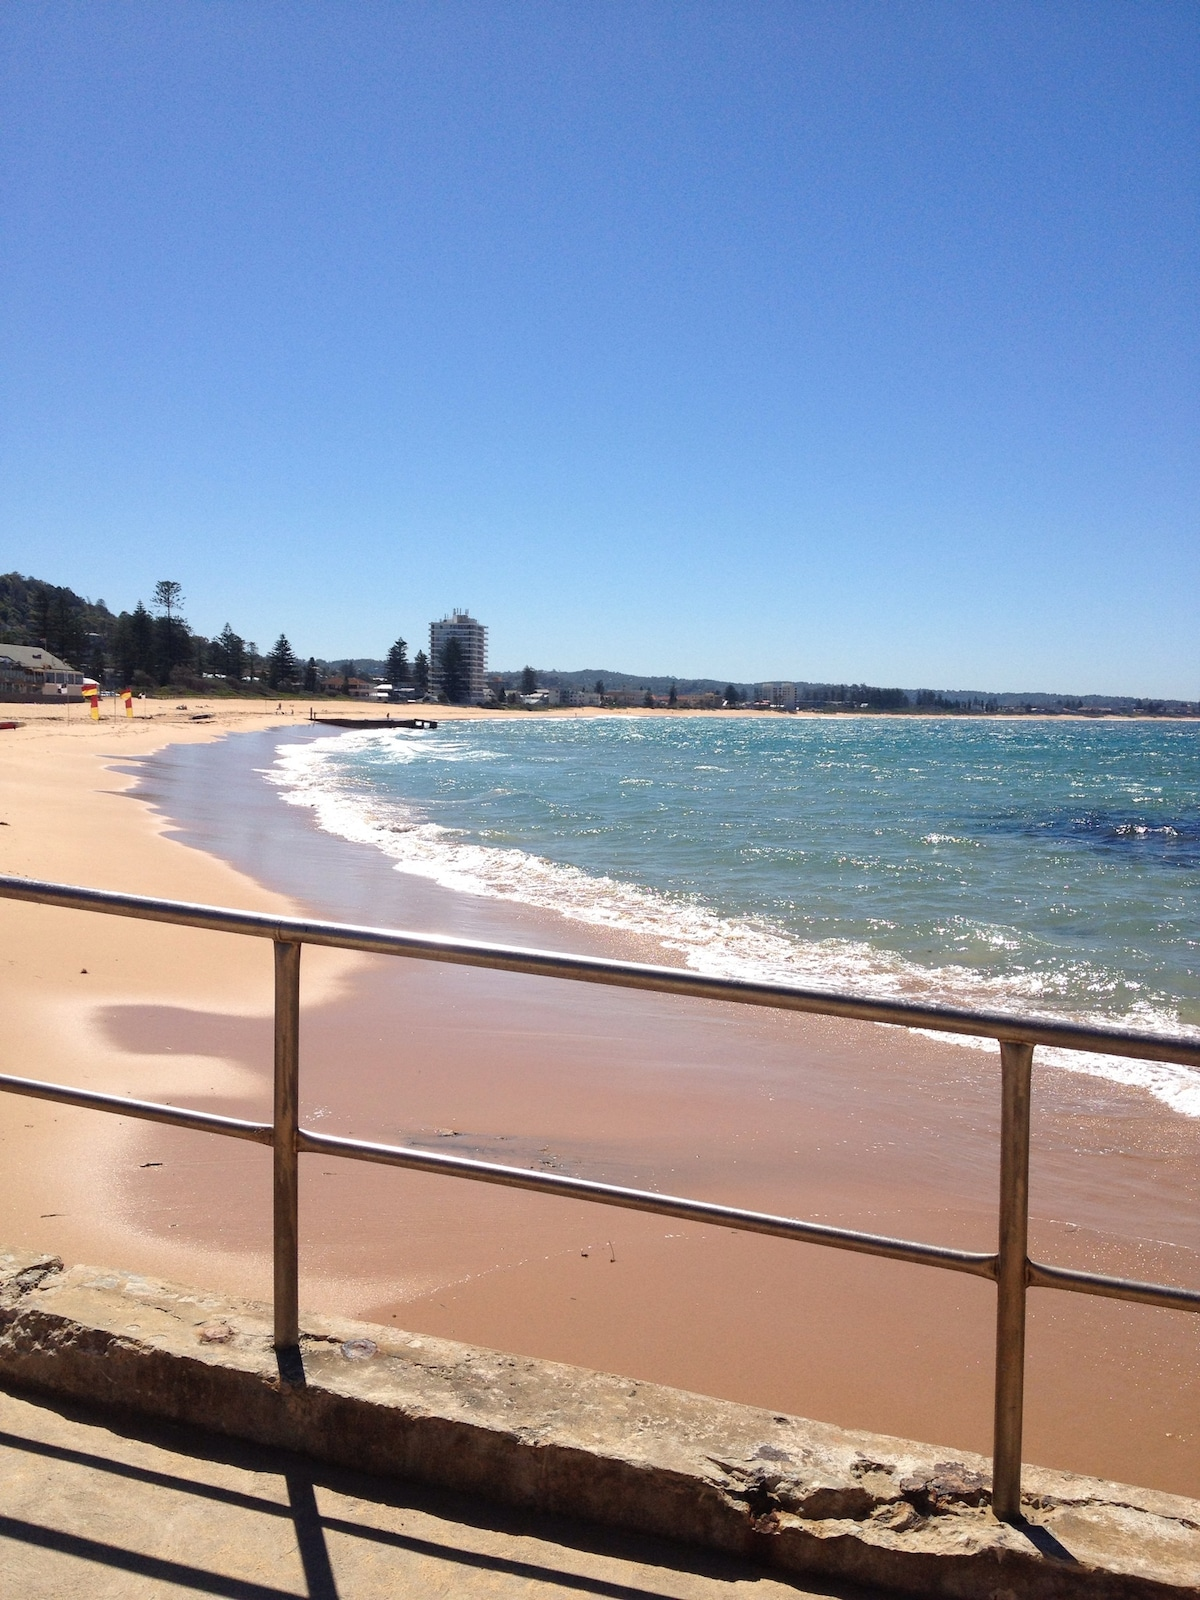 Collaroy beach is only 1.2km from our house - a 15 minute walk